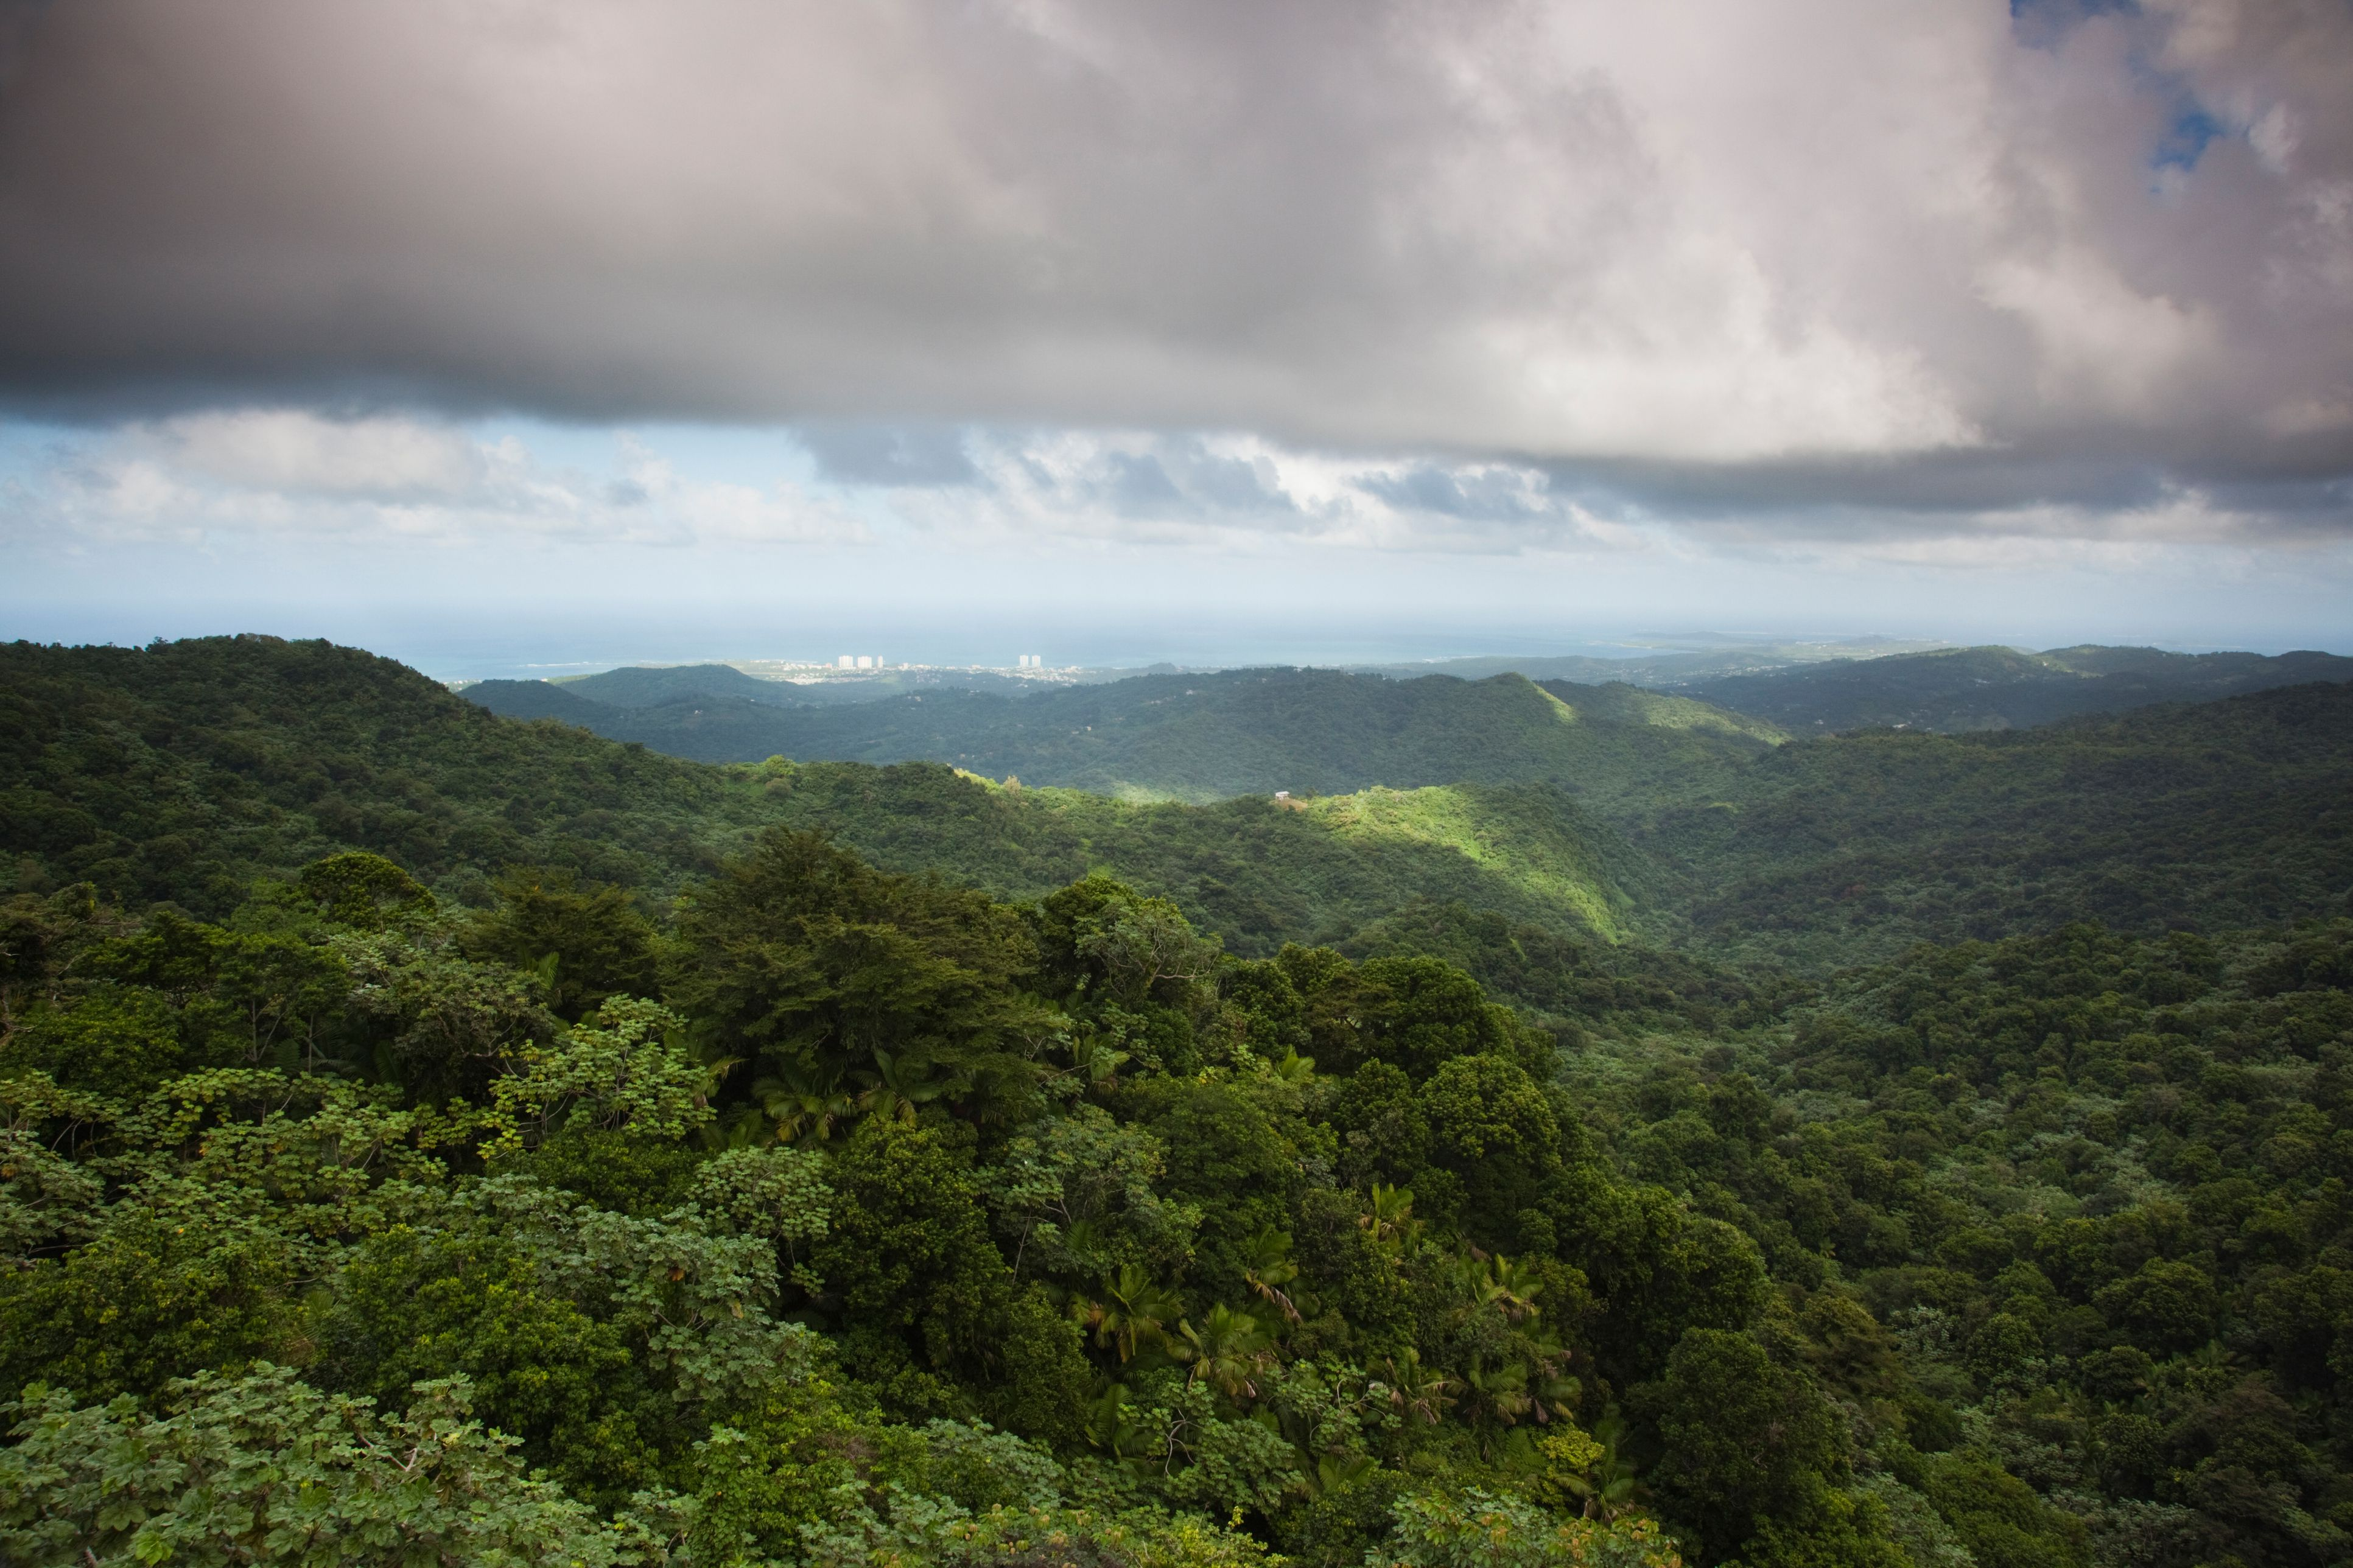 High angle view of El Yunque Rainforest from the Yokahu Tower, El Yunque, Puerto Rico